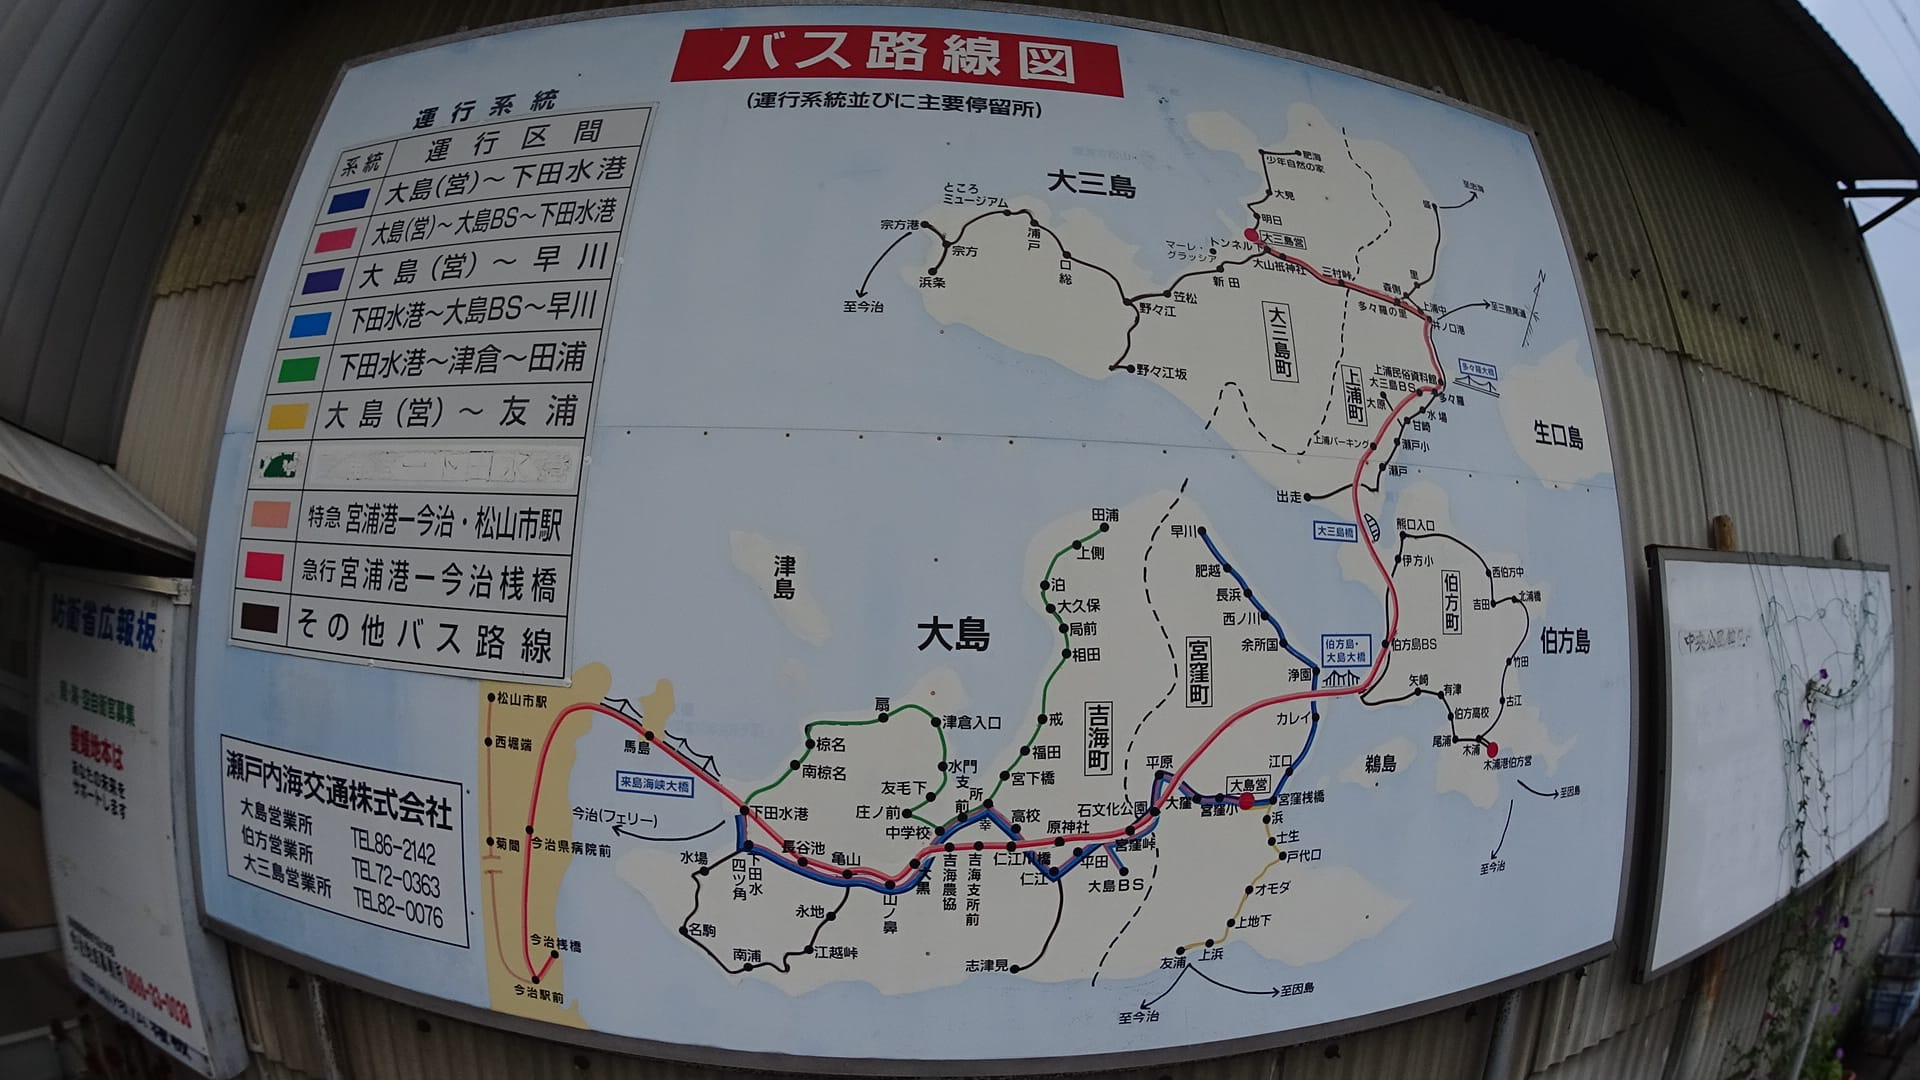 Bus routes available in Miyakubo Station